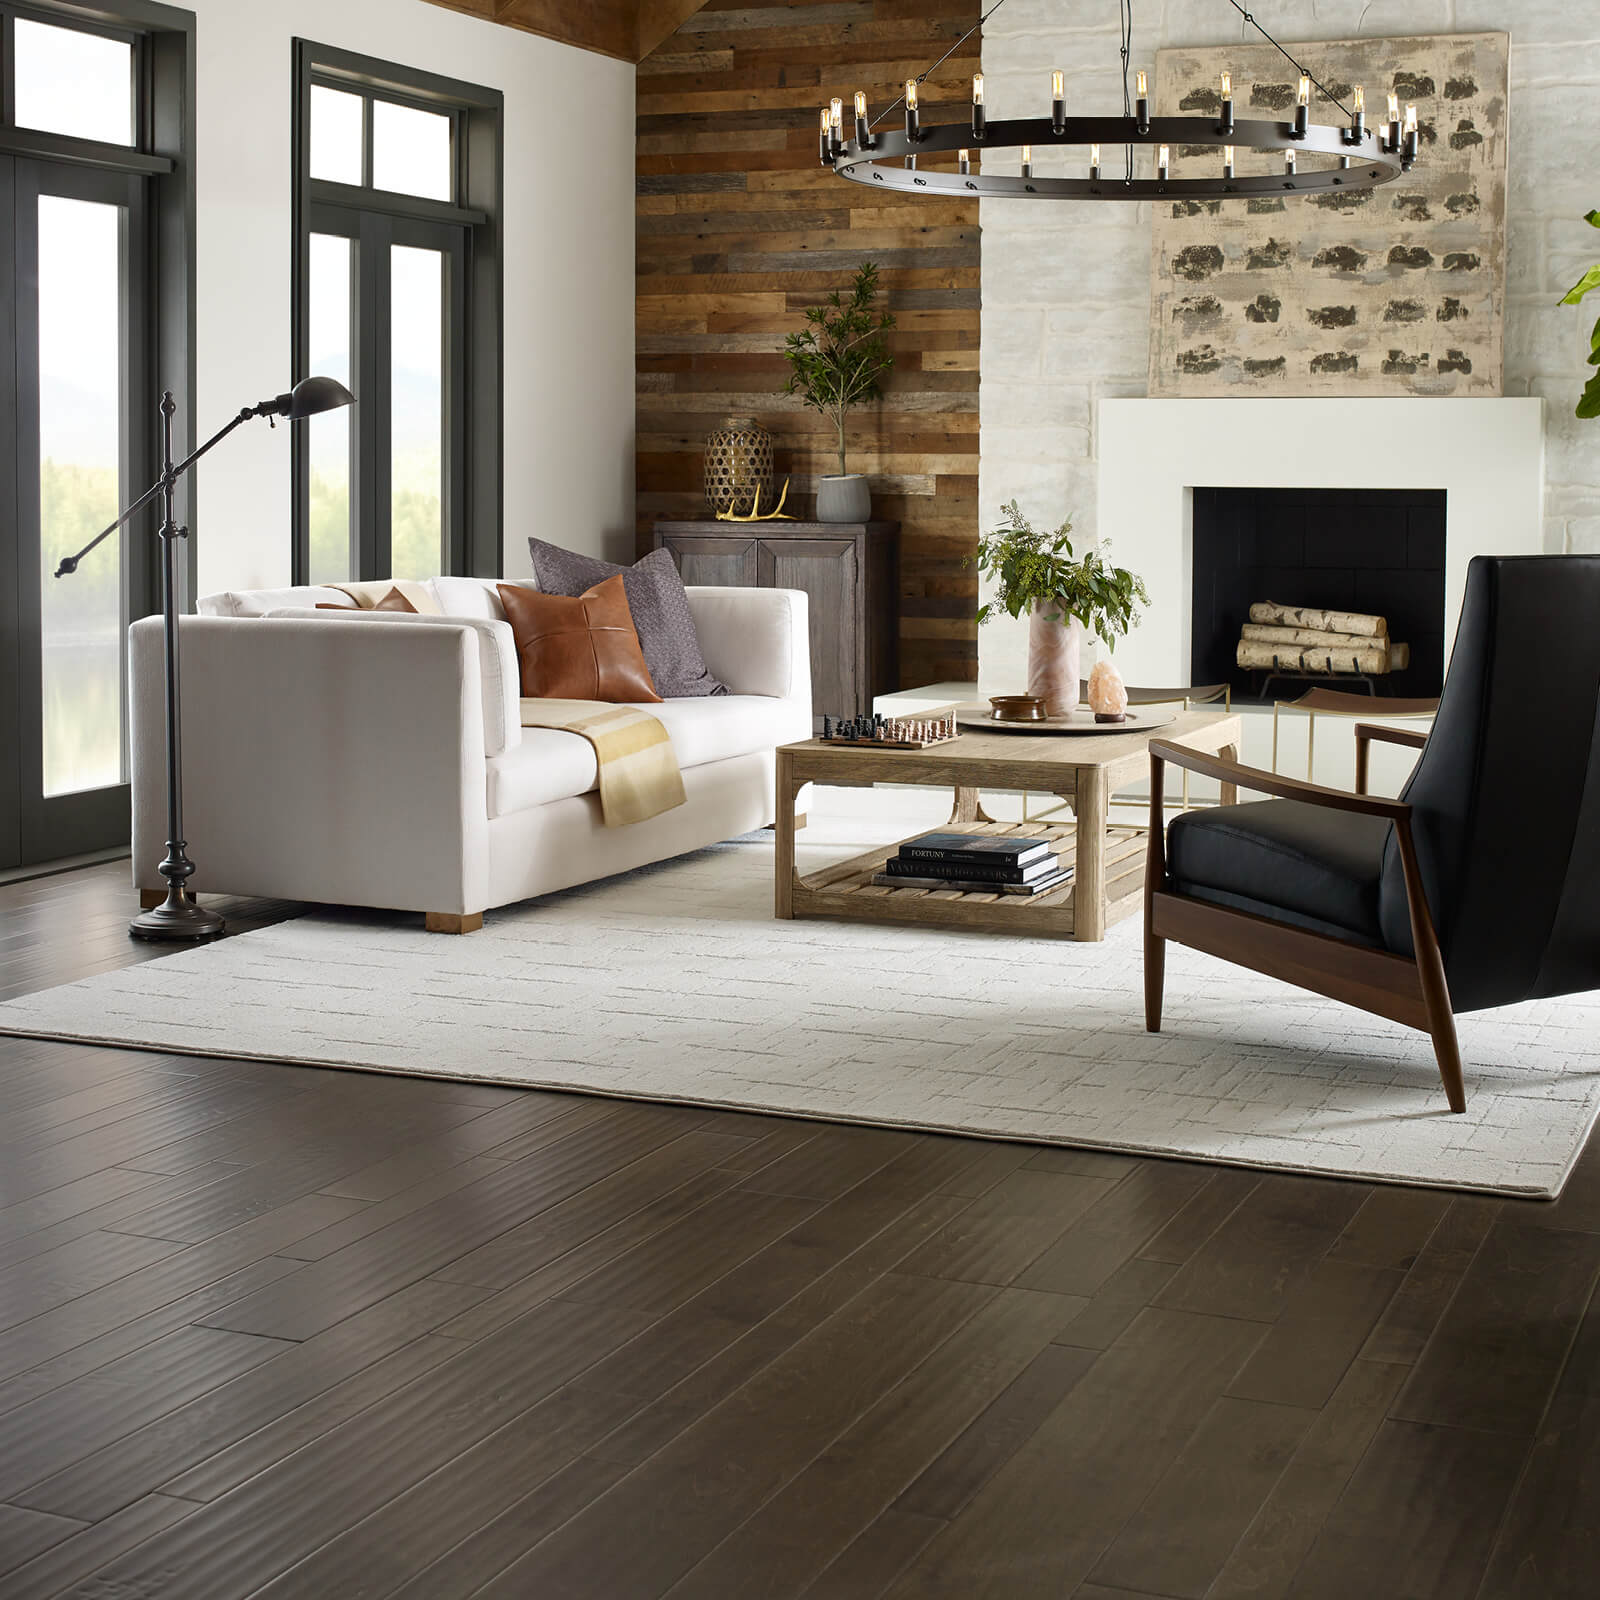 Key West hardwood Flooring | Great Floors